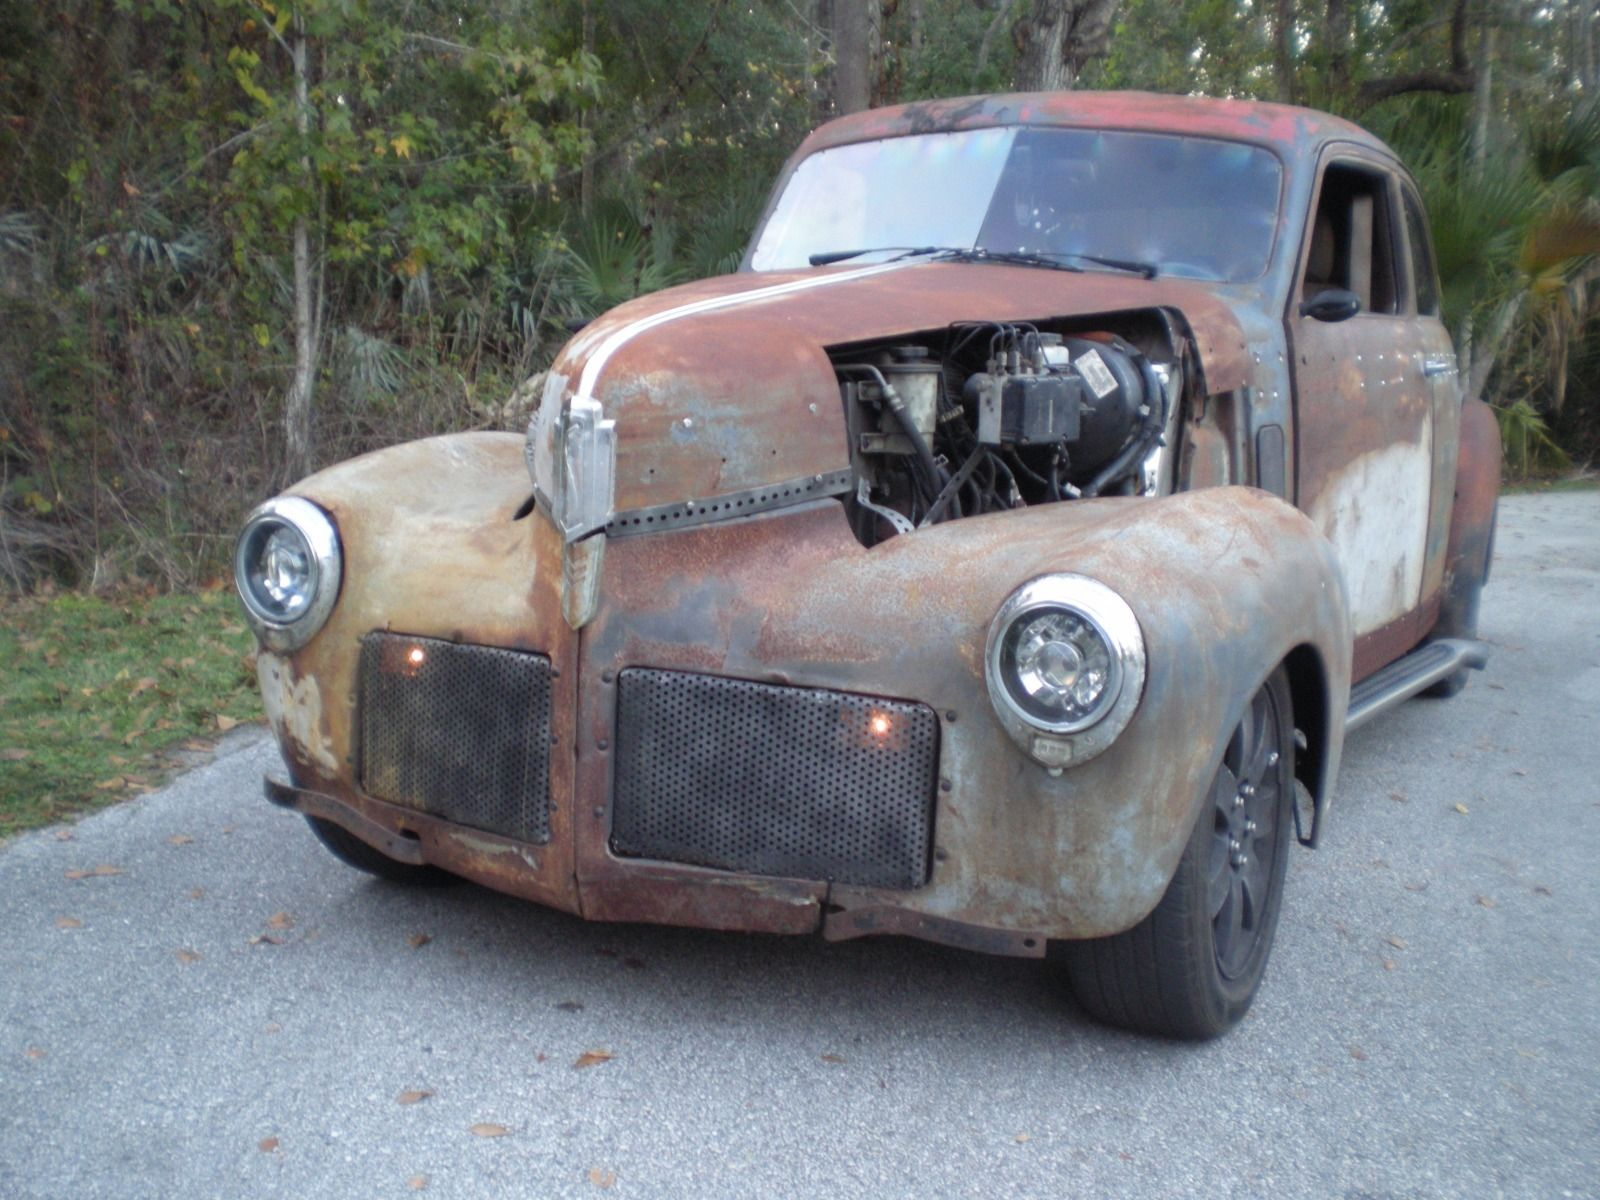 Tag rat rod